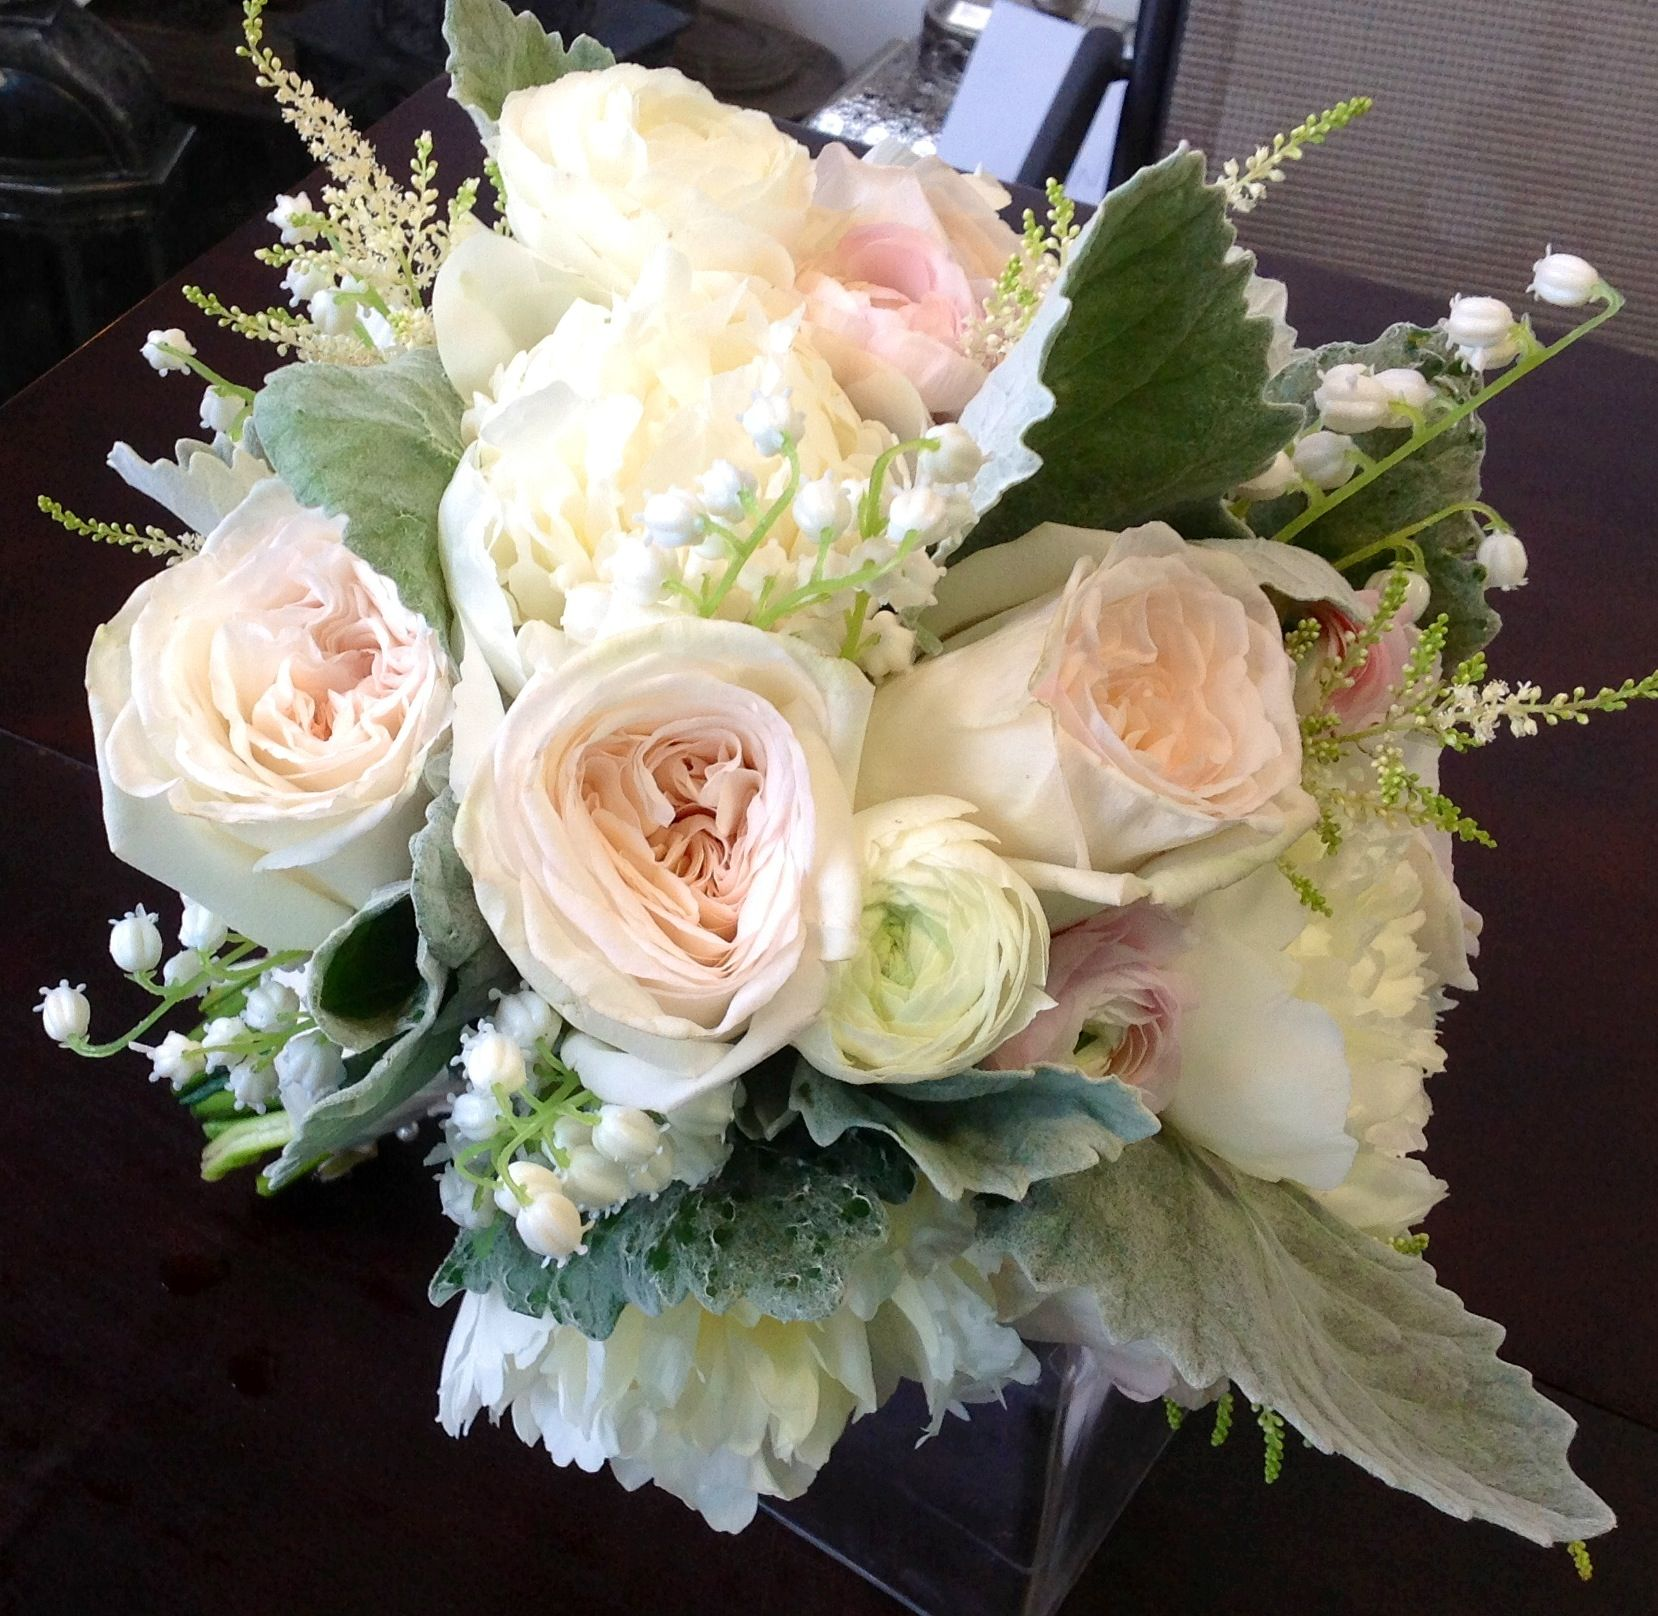 elegant wedding bouquet comprised of white peonies white ranunculus white lily of the valley light pastel pink english garden roses dusty miller